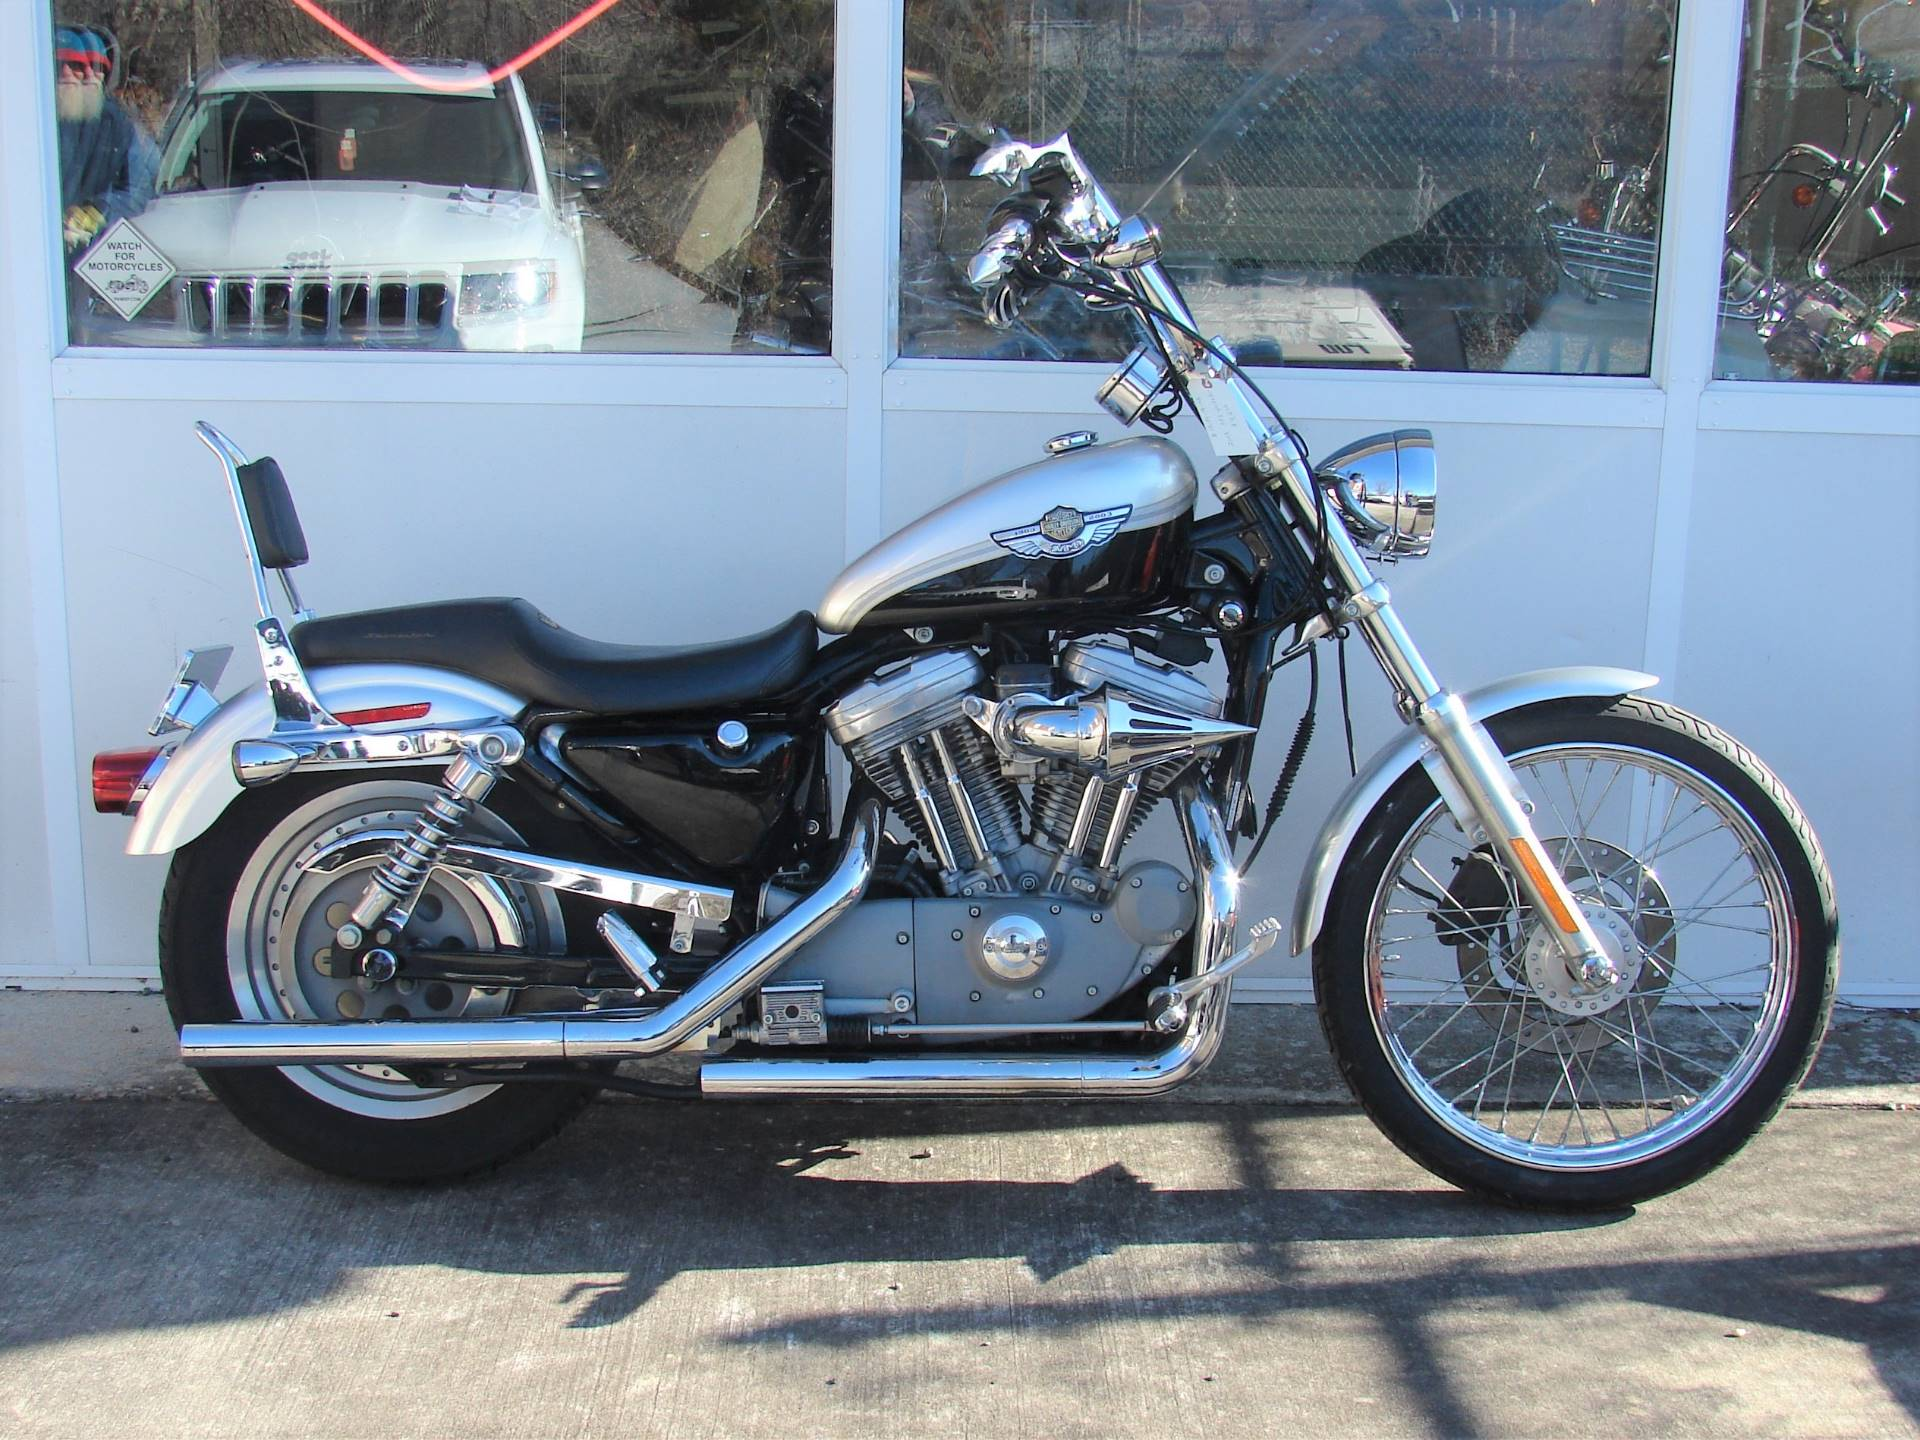 2003 Harley-Davidson XLH 883 Sportster (Anniversary Edition) (Silver & Black) in Williamstown, New Jersey - Photo 9